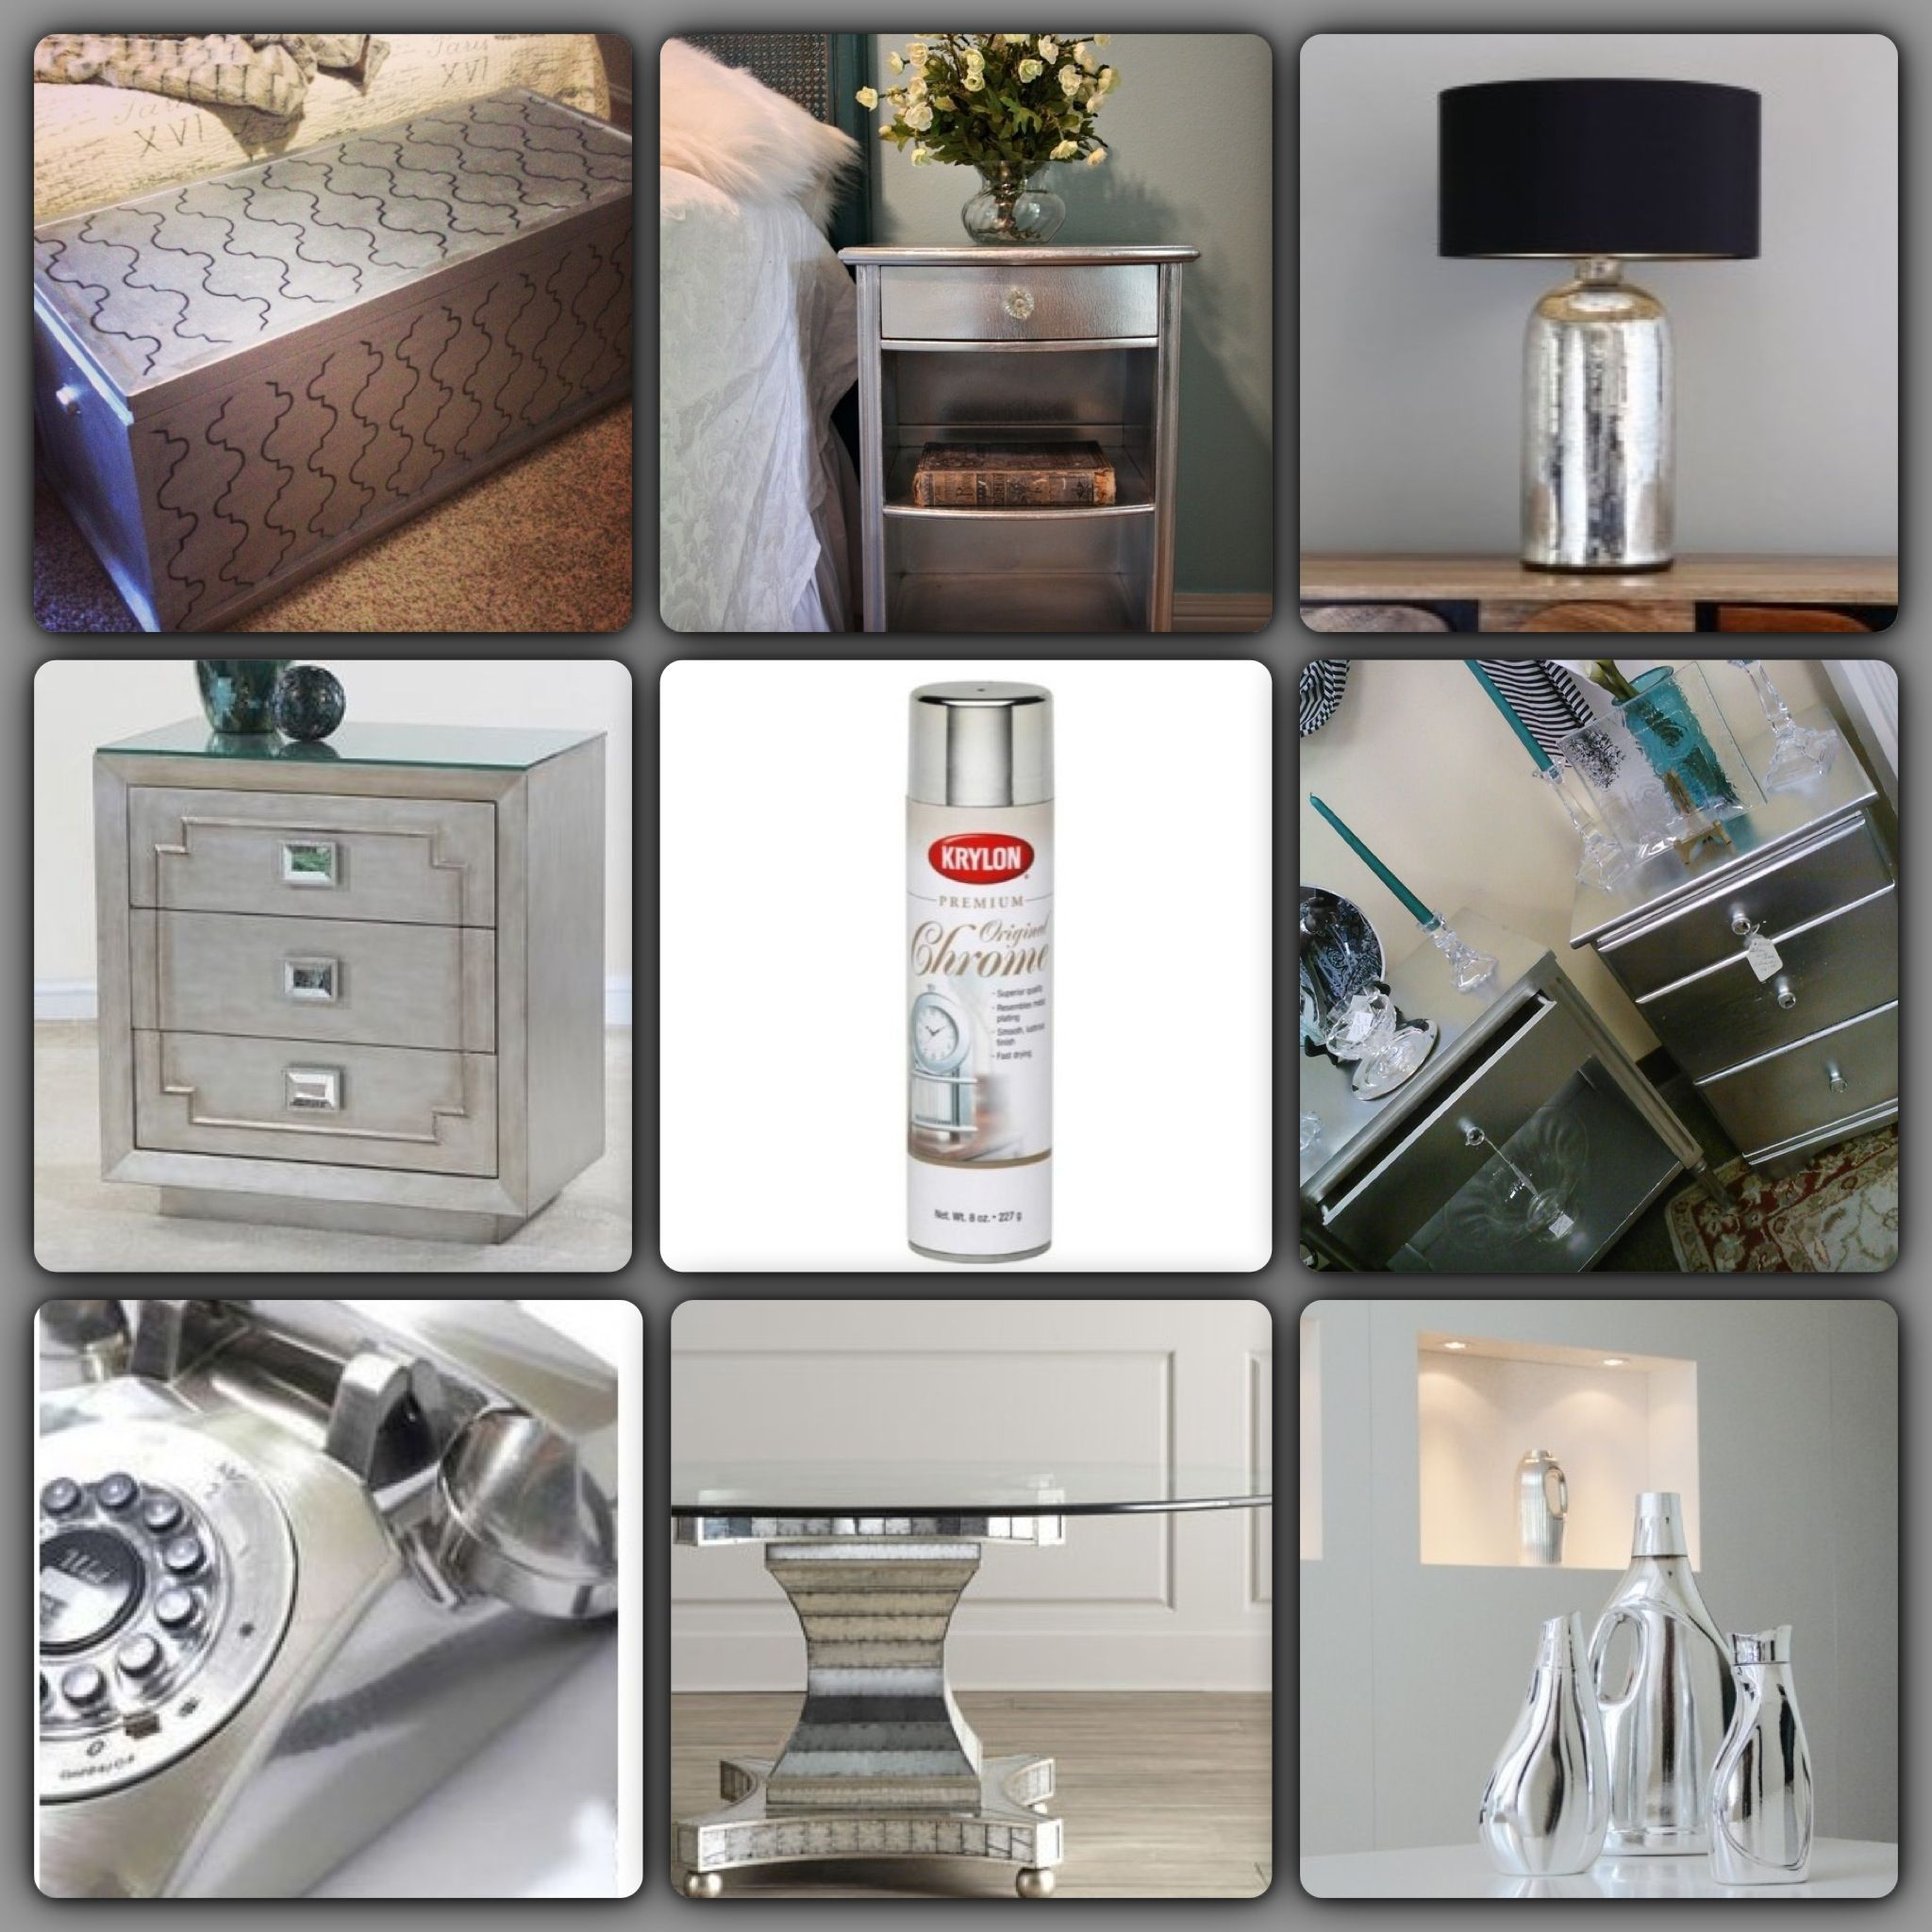 chrome spray paint diy projects to try pinterest. Black Bedroom Furniture Sets. Home Design Ideas